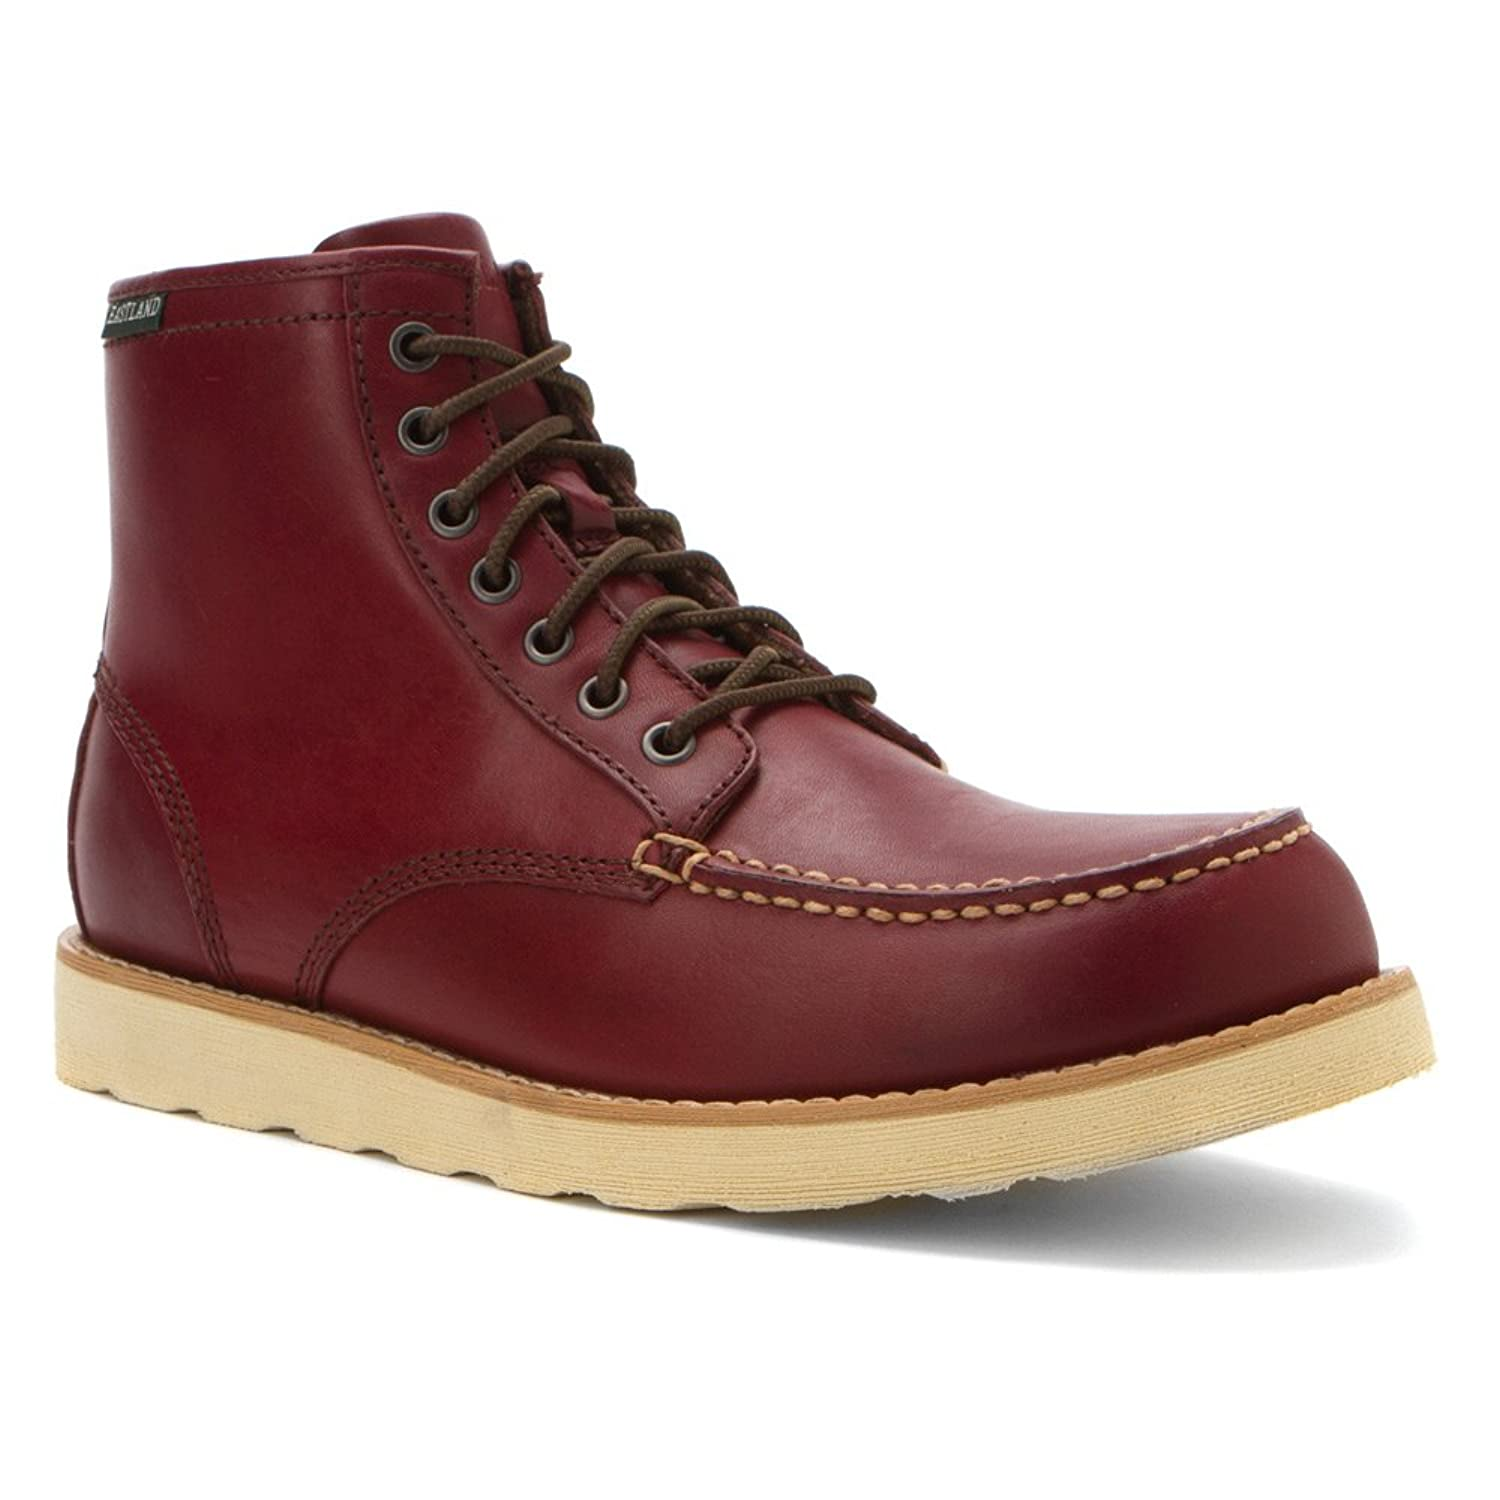 Eastland Mens Lumber Up Lace Up Boot,Chestnut Leather,9 D US